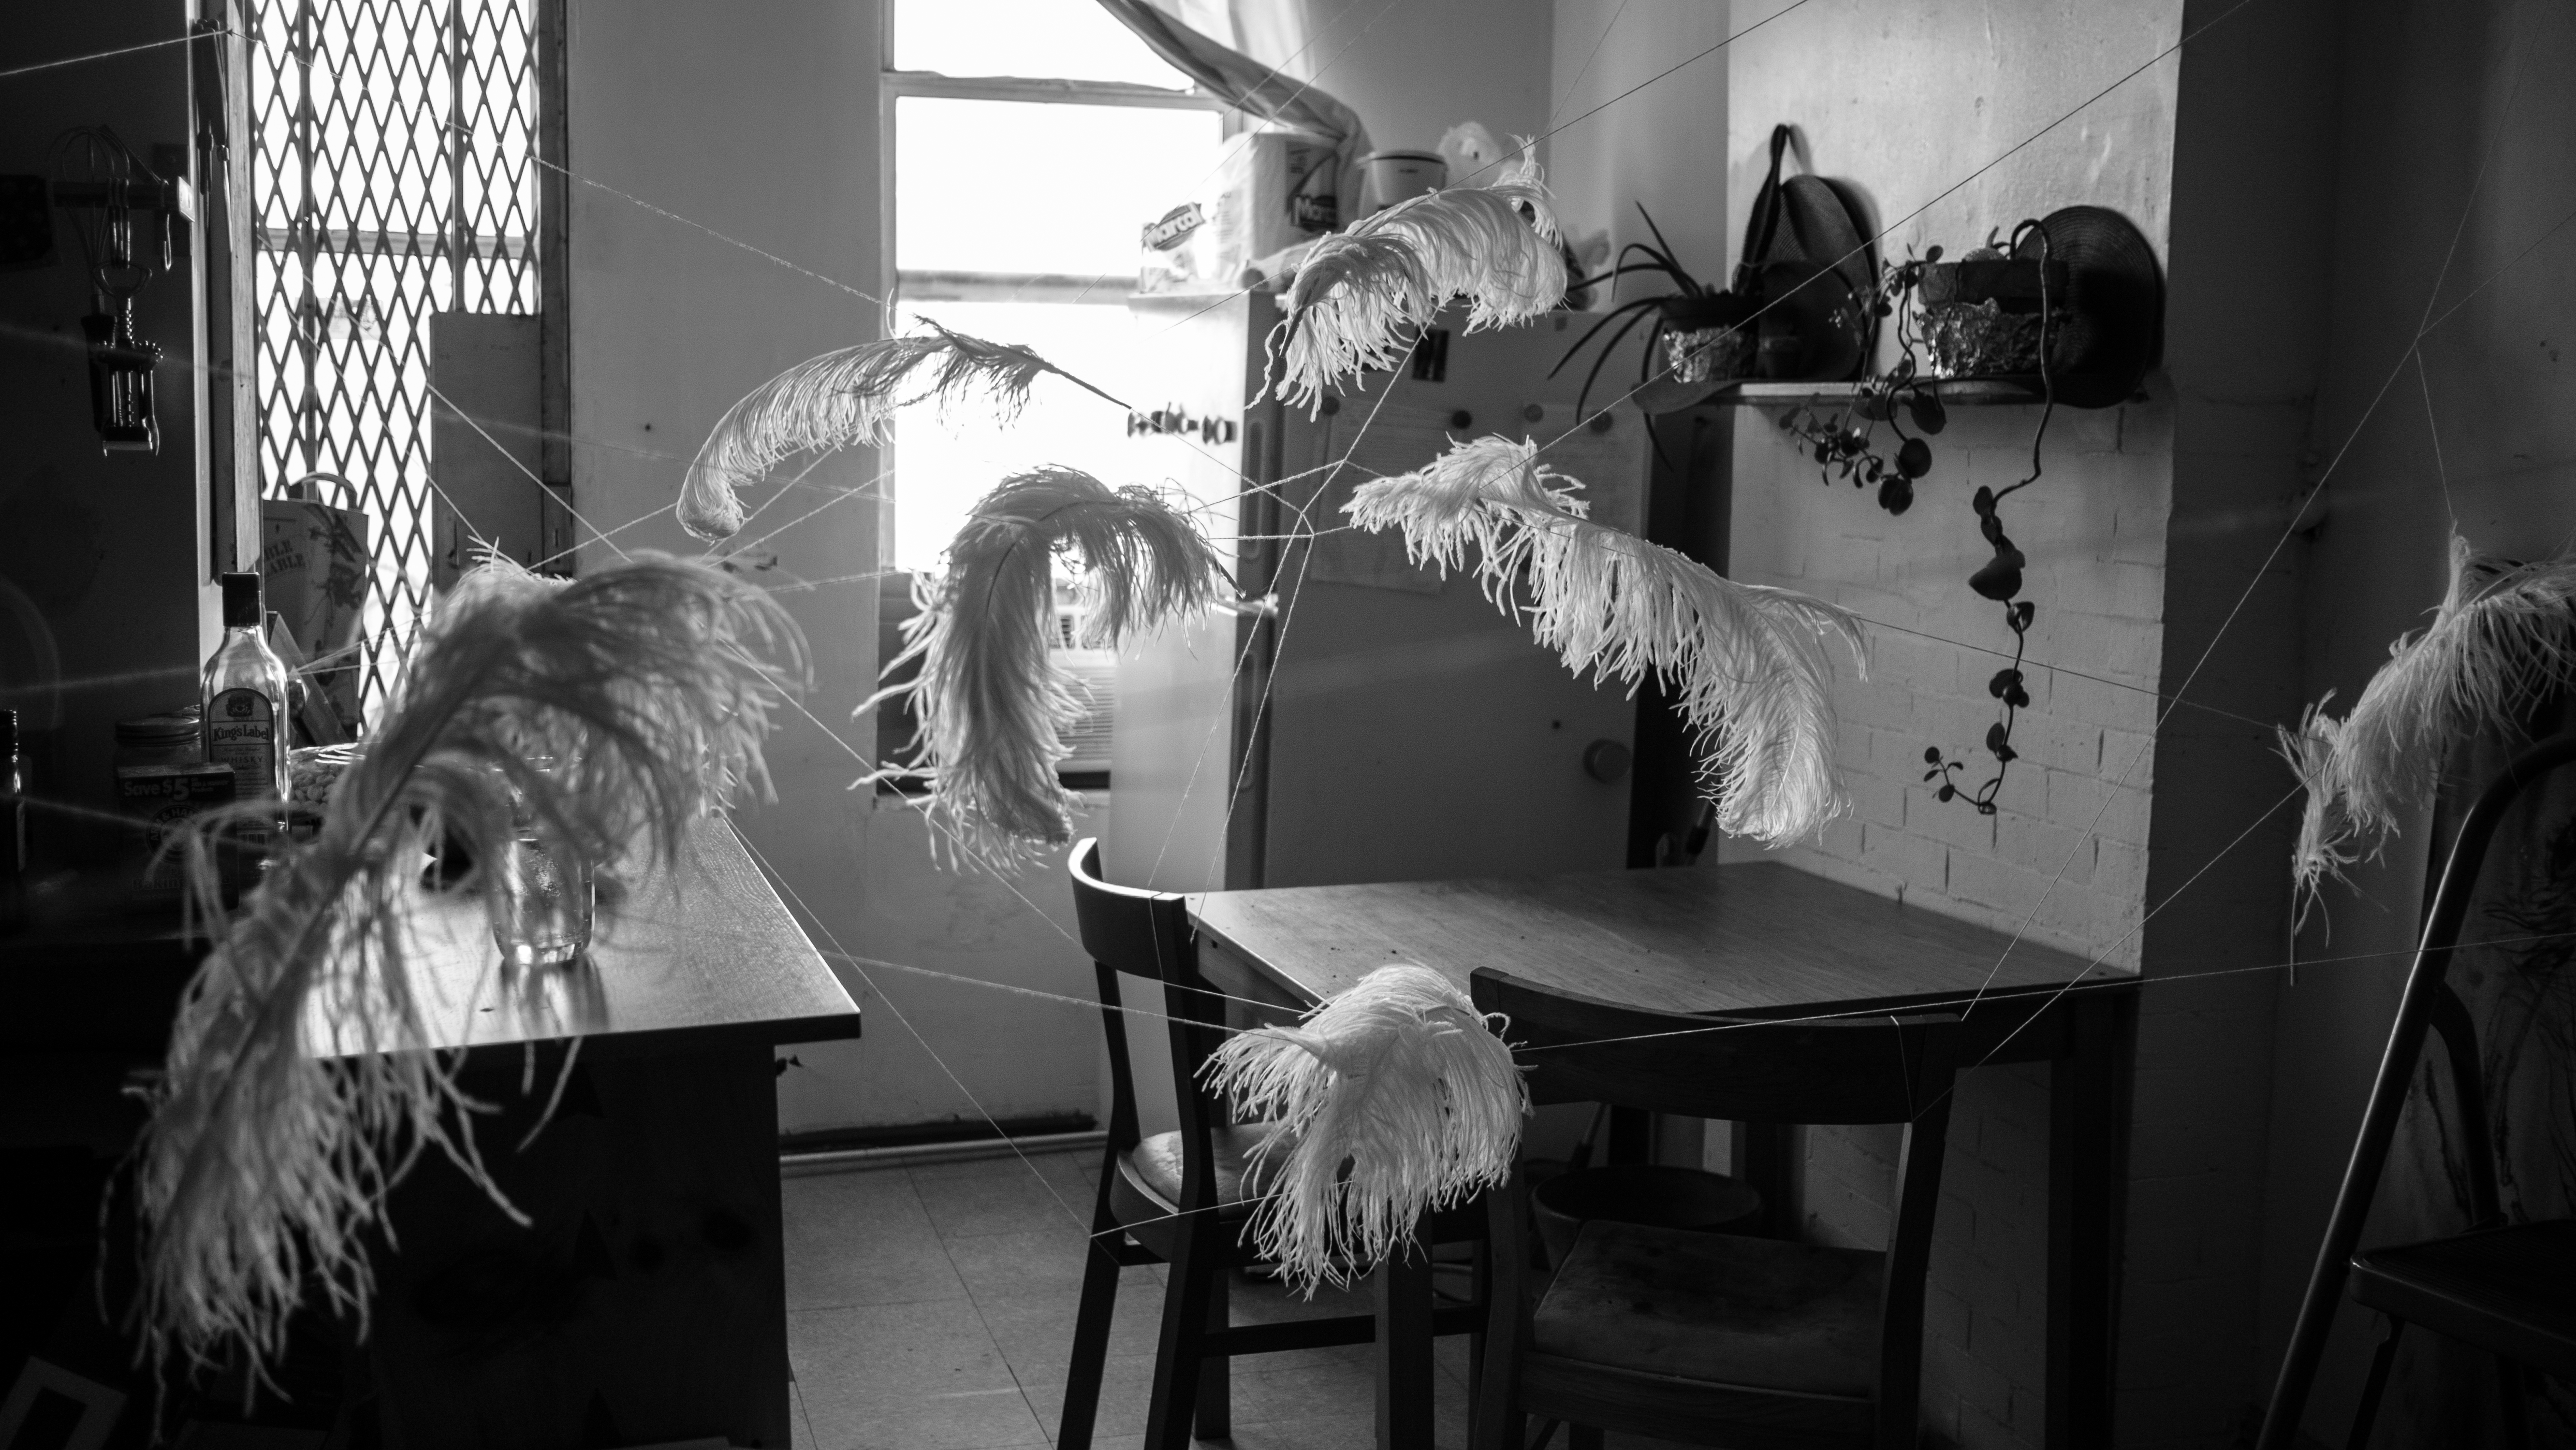 feathers installation whitney biennale (8 of 10)